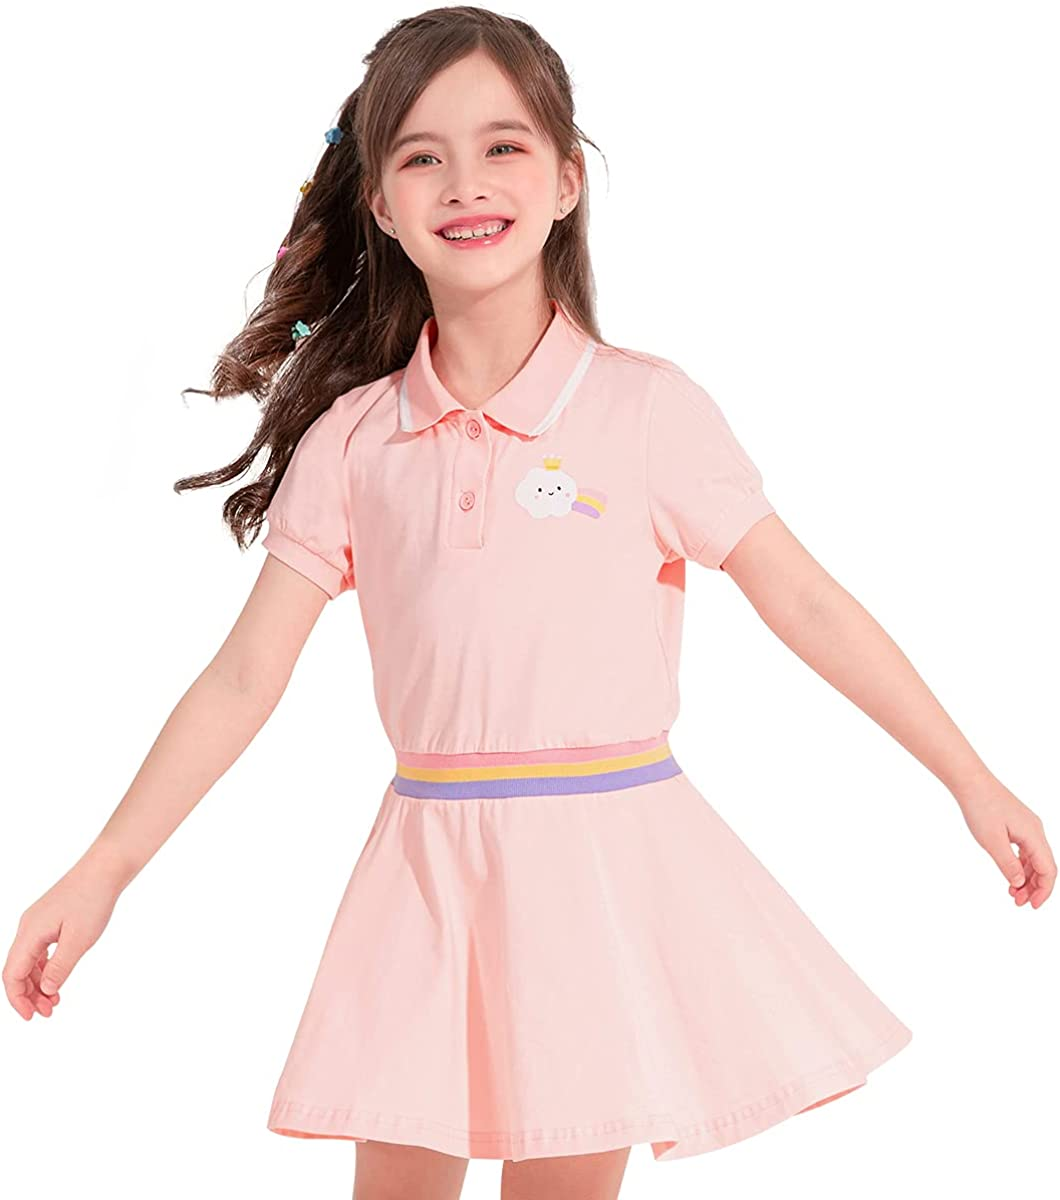 60s 70s Kids Costumes & Clothing Girls & Boys cicie Girls Summer Cotton Casual Cute Princess Short Sleeve Dresses for School Party for 3-9 Years Kids  AT vintagedancer.com